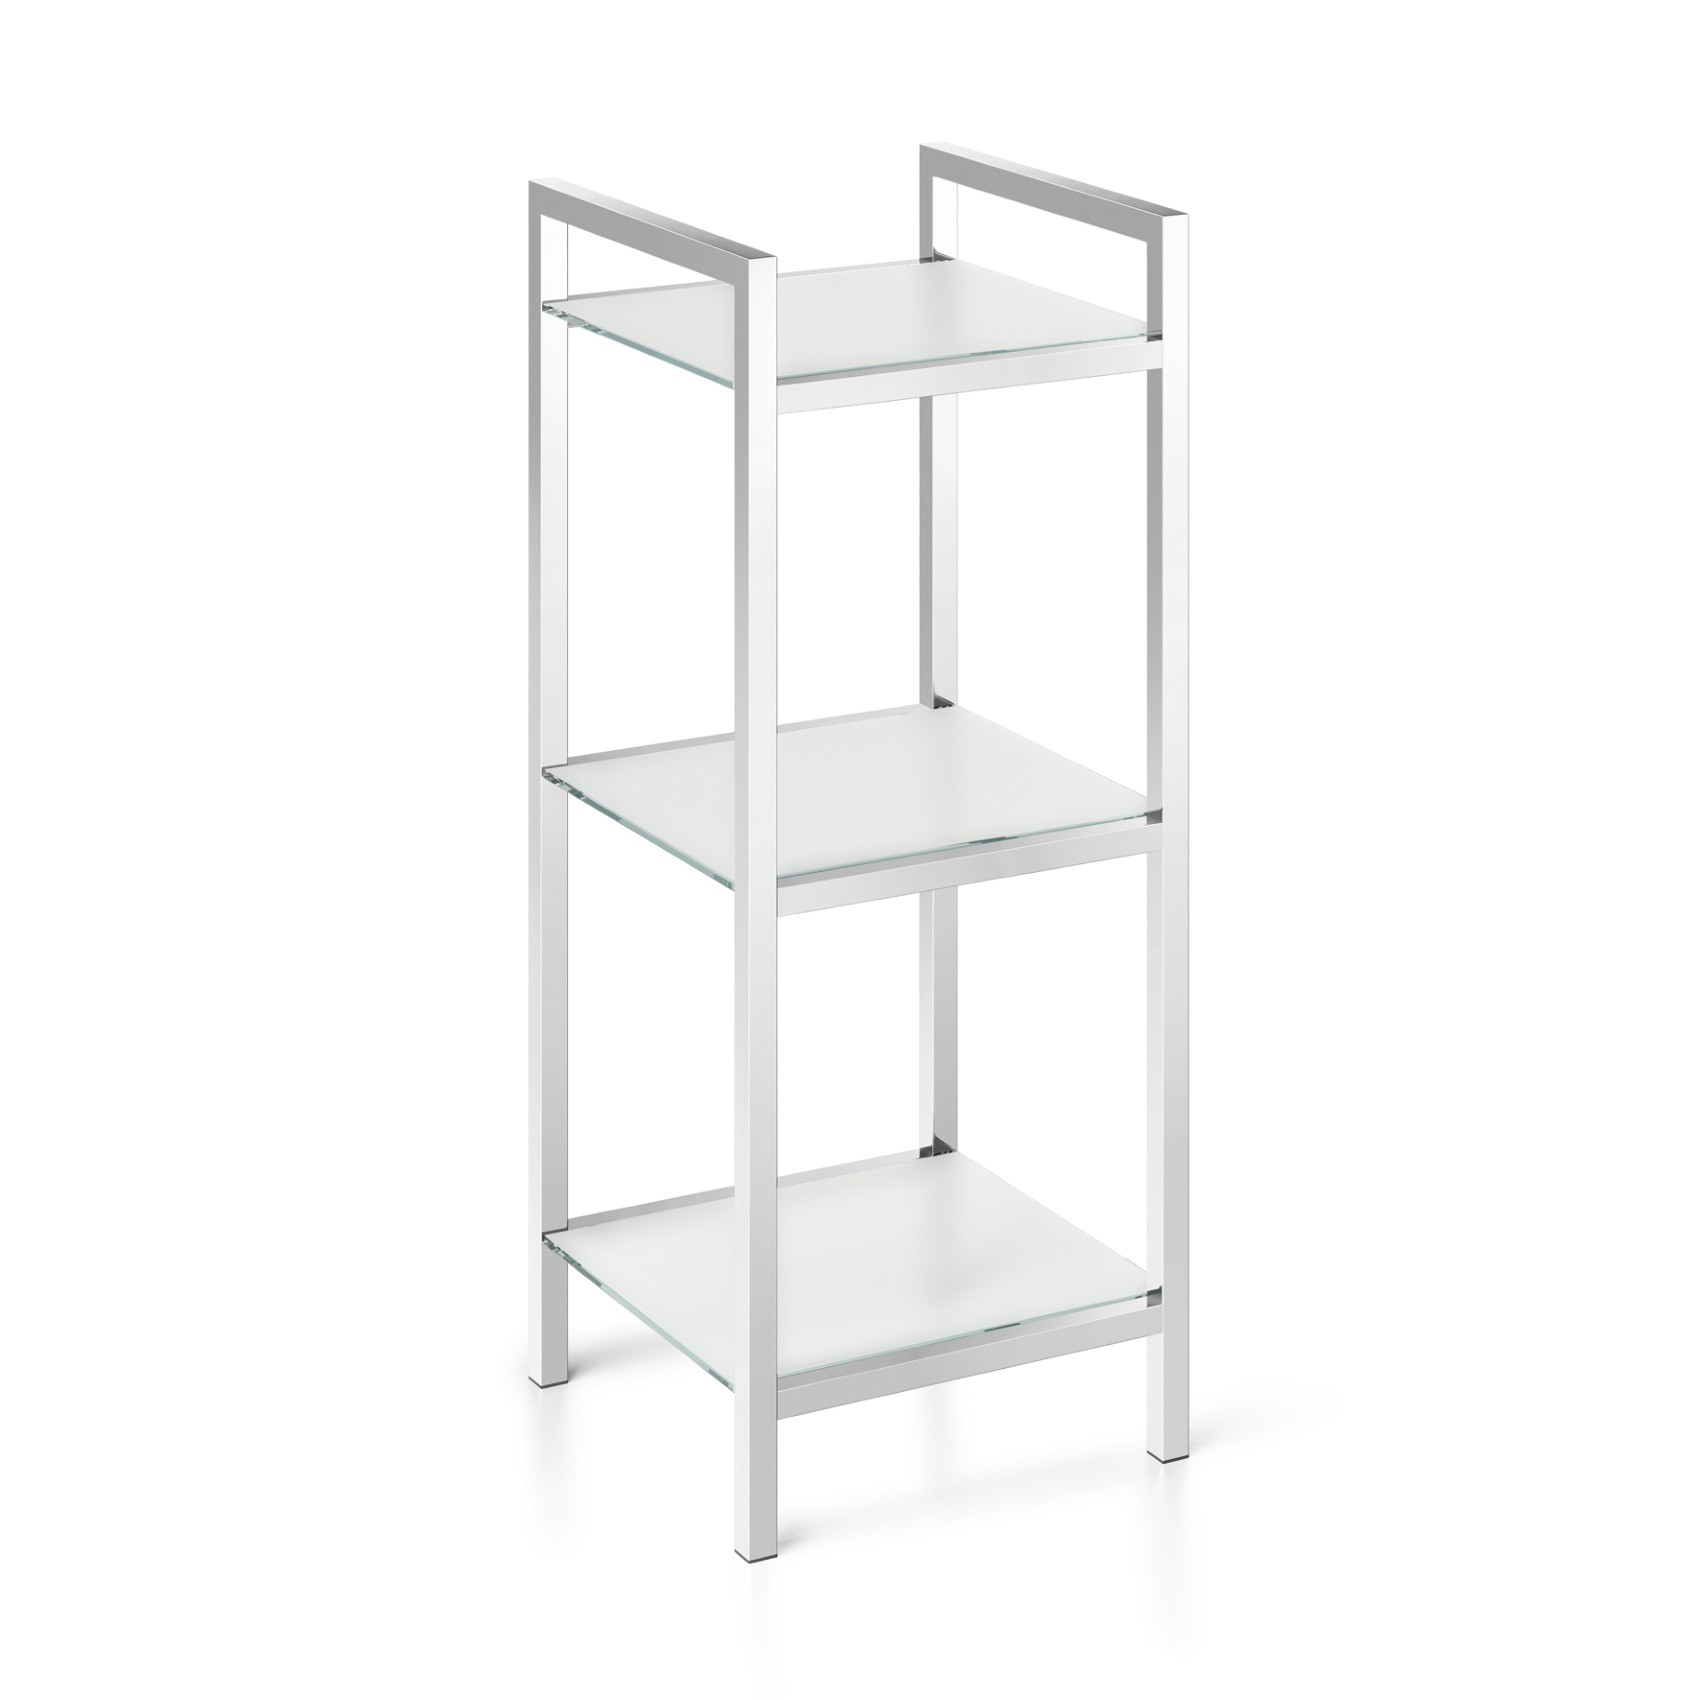 Badregal Glas Zack Bathroom Shelving Cenius Stainless Steel And Tempered Glass With 3 Storage Compartments Polished